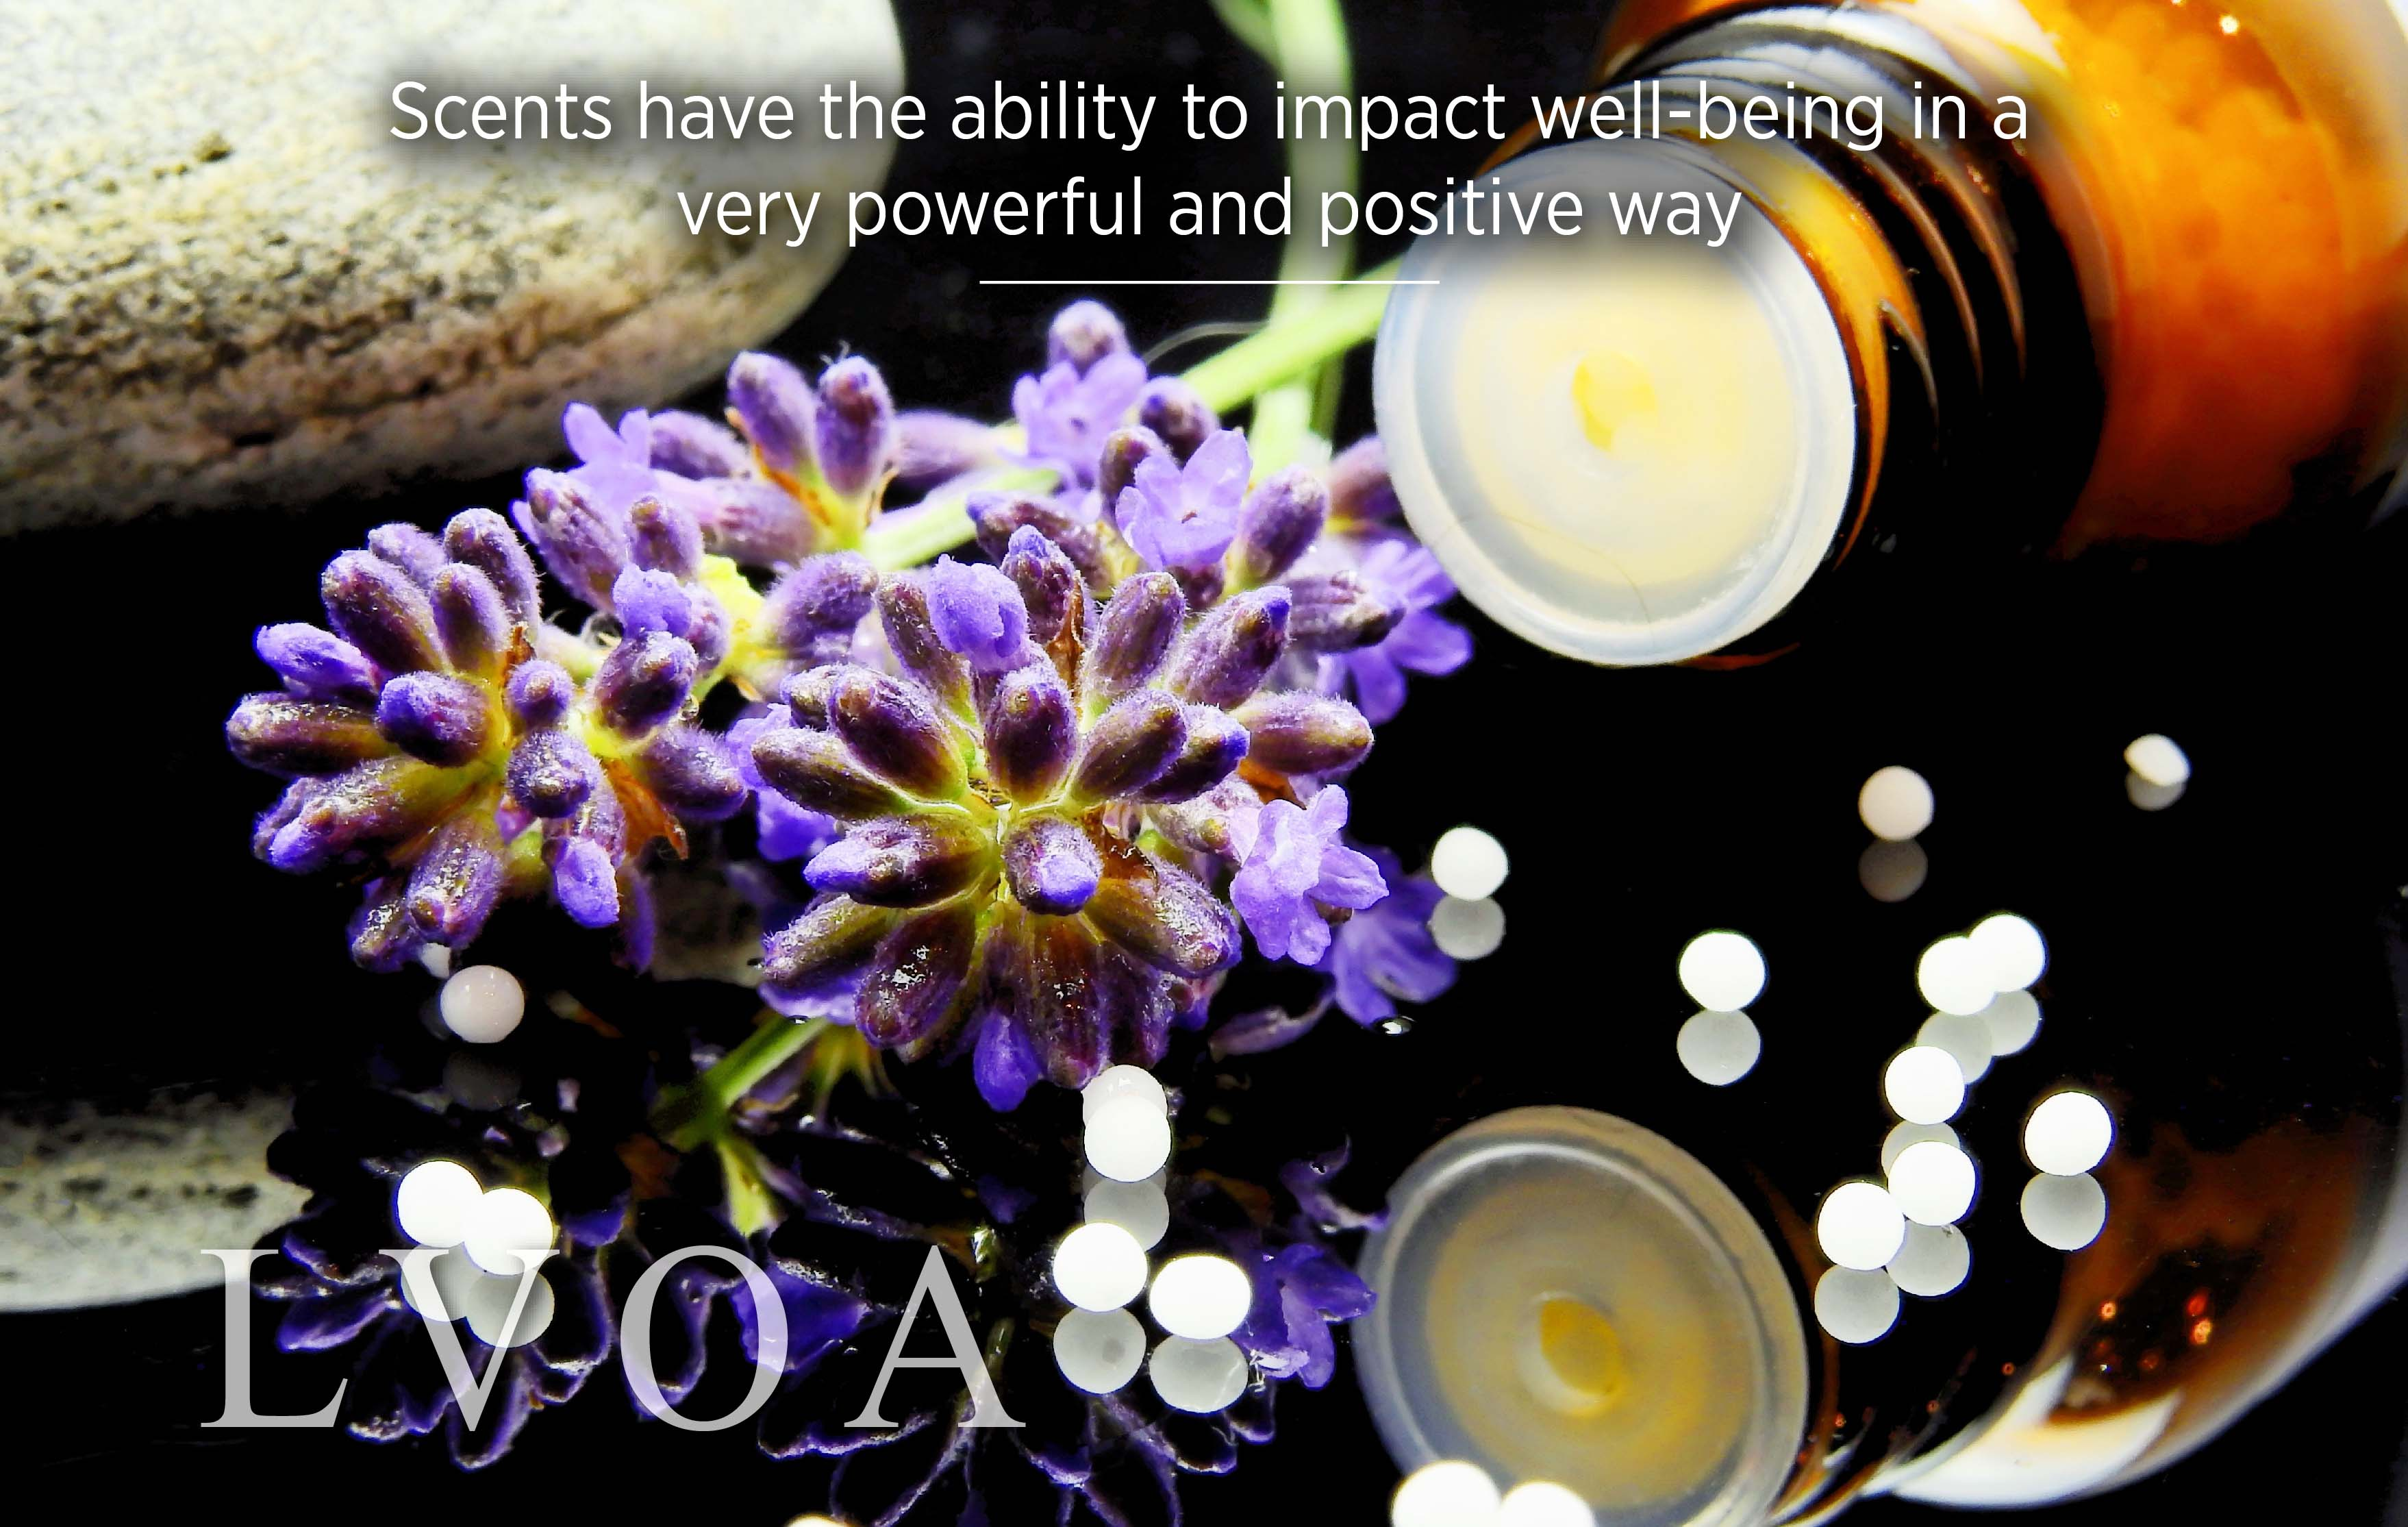 Scents have the ability to impact well-being in a very powerful and positive way